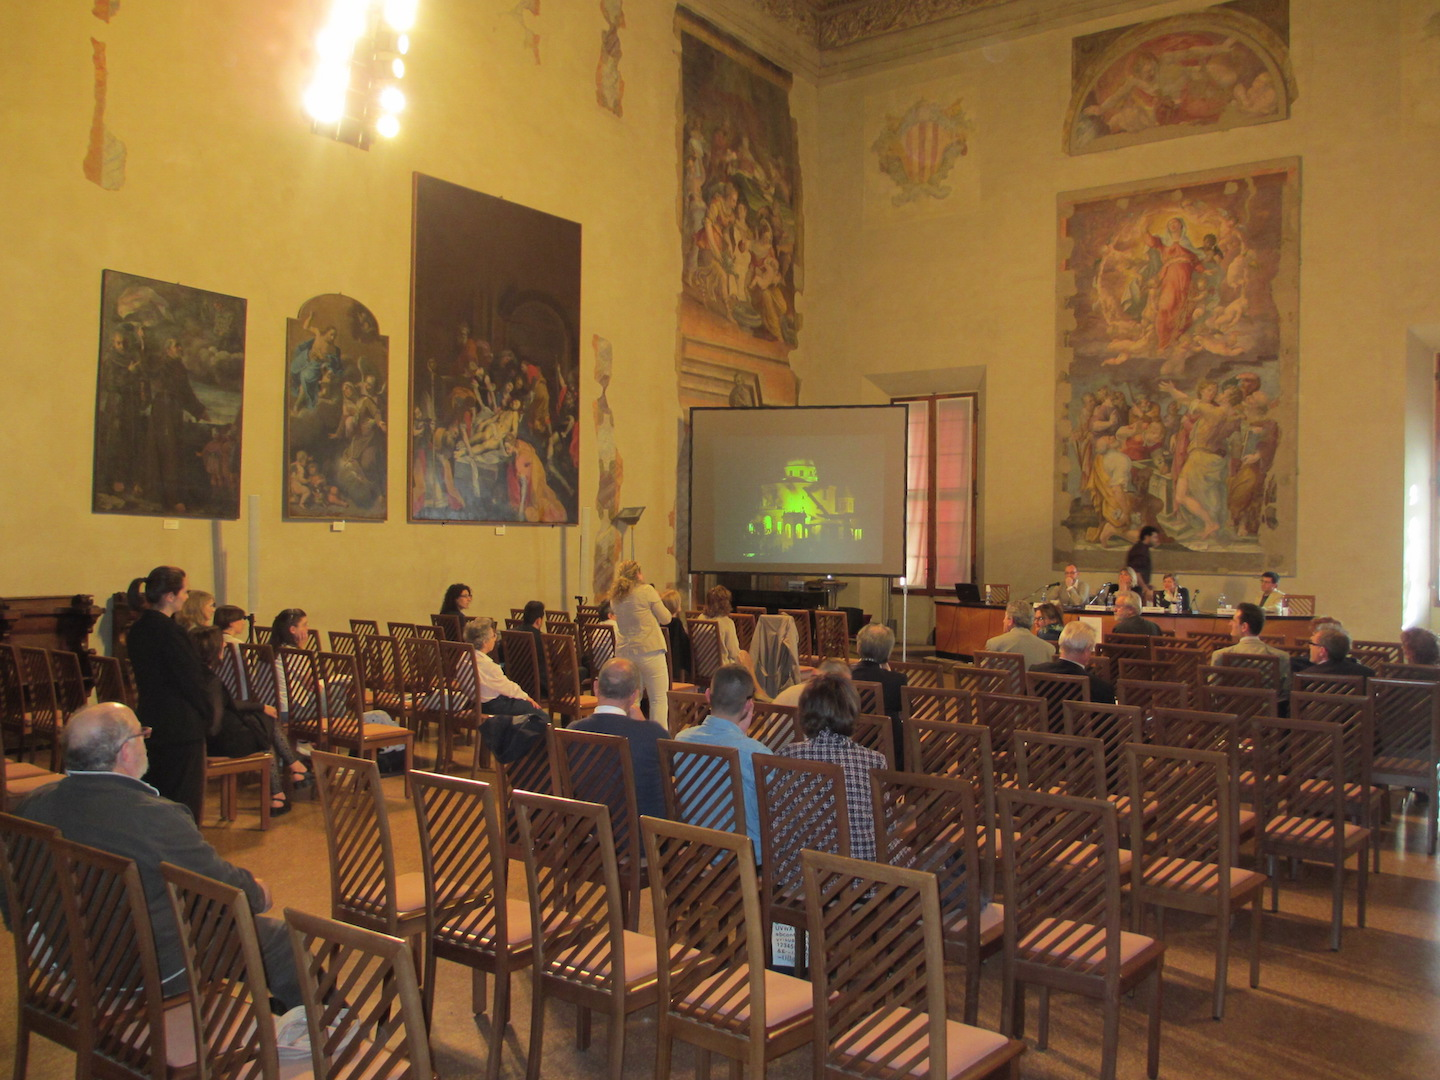 Contours of the City Conference meeting room: Capella Farnese, Palazzo d'Accursio, Bologna (Photograph by D. Saitta)